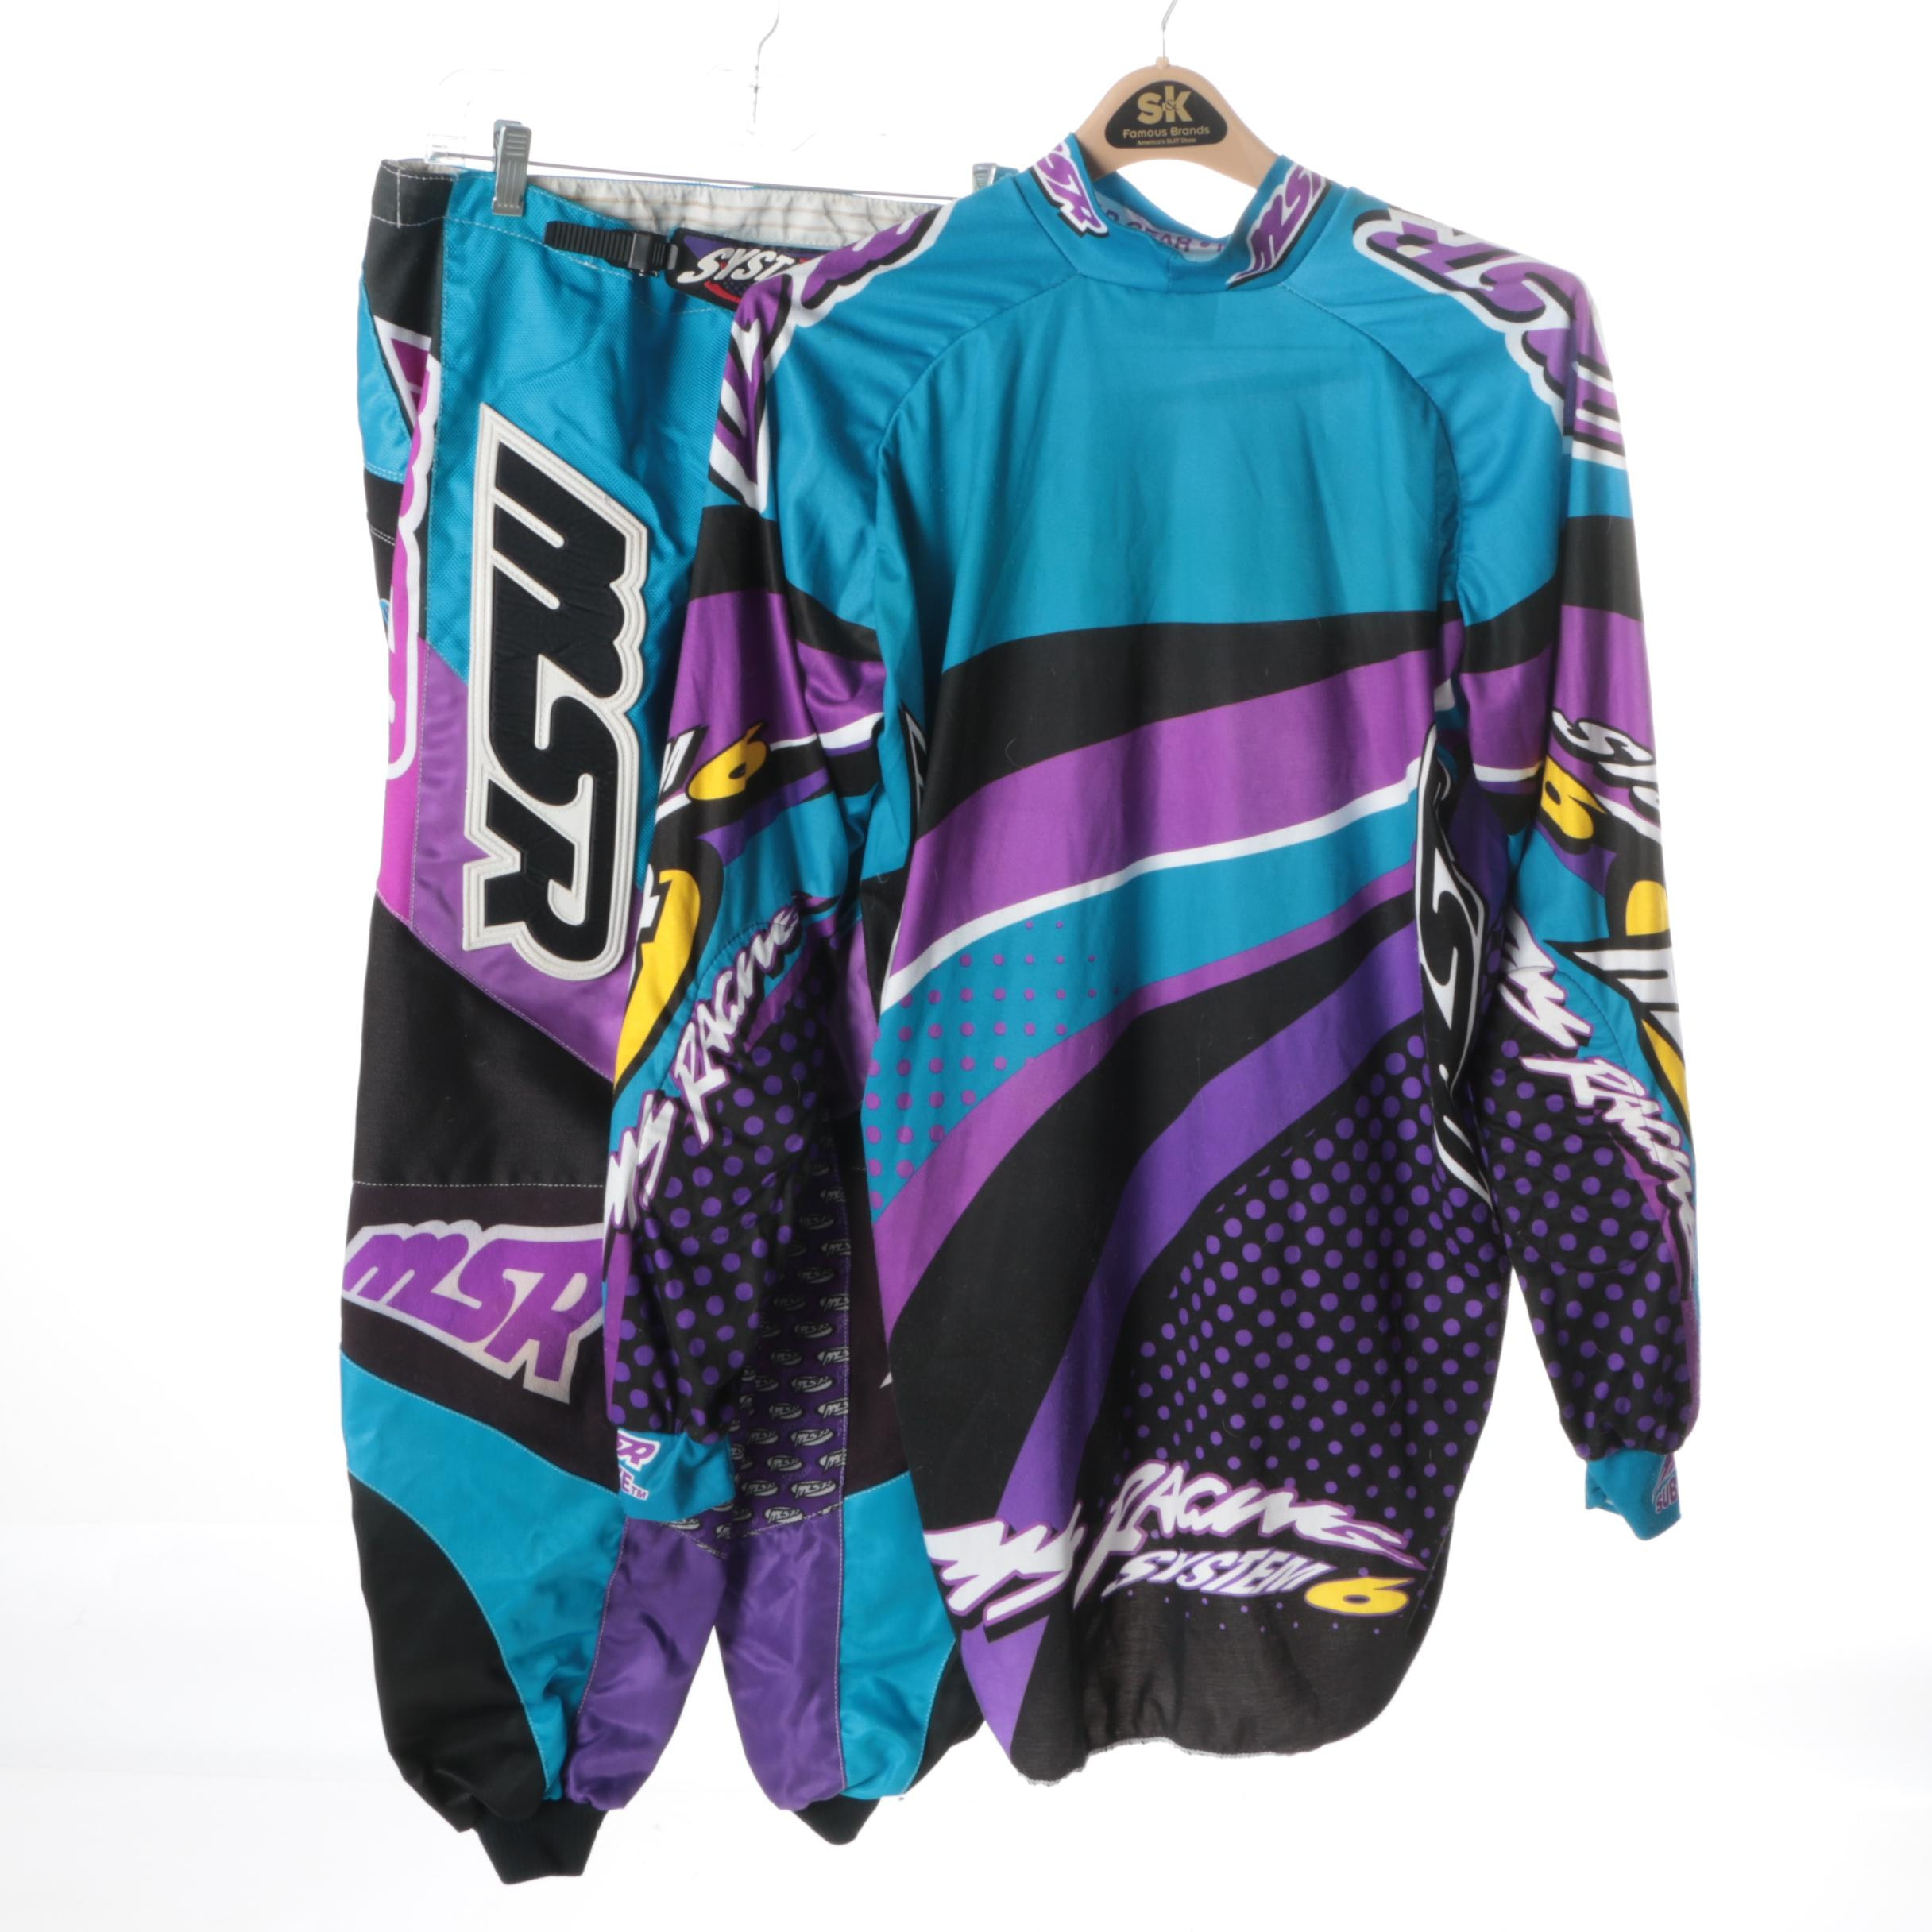 Men's Malcolm Smith Racing Motocross Jersey and Pants